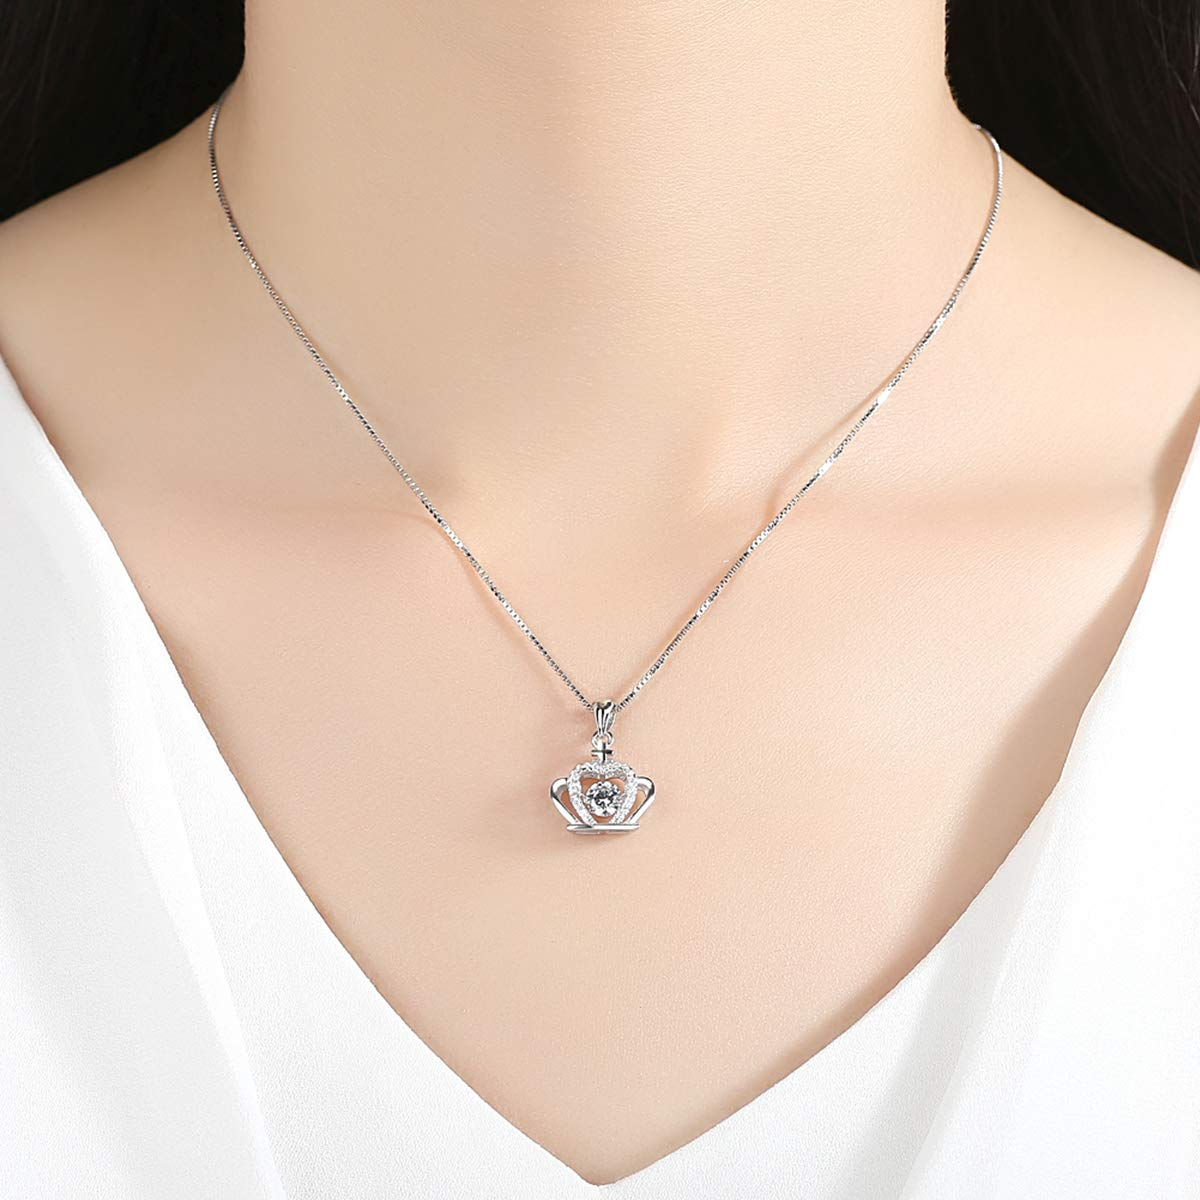 Heart Necklaces for Women,Dancing Diamond Halo Pendant Charms 925 Sterling Silver Dainty Blue Gold White Open Pendant Necklace for Teen Girls Girlfriend Mom Wife Daughter Friendship with Elegant Box